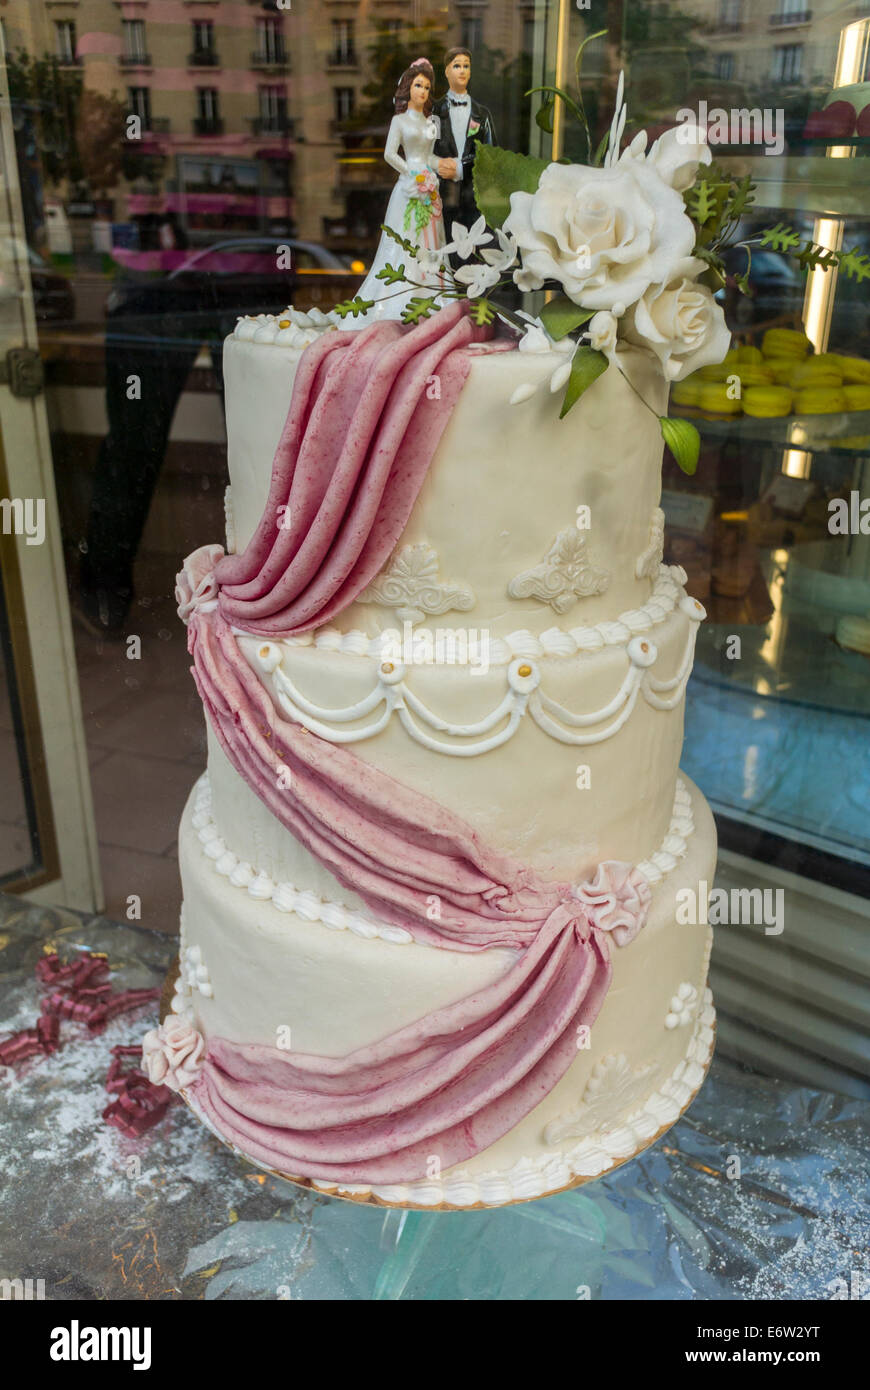 French Wedding Cake.Paris France Shopping French Pastries Traditional Wedding Cake